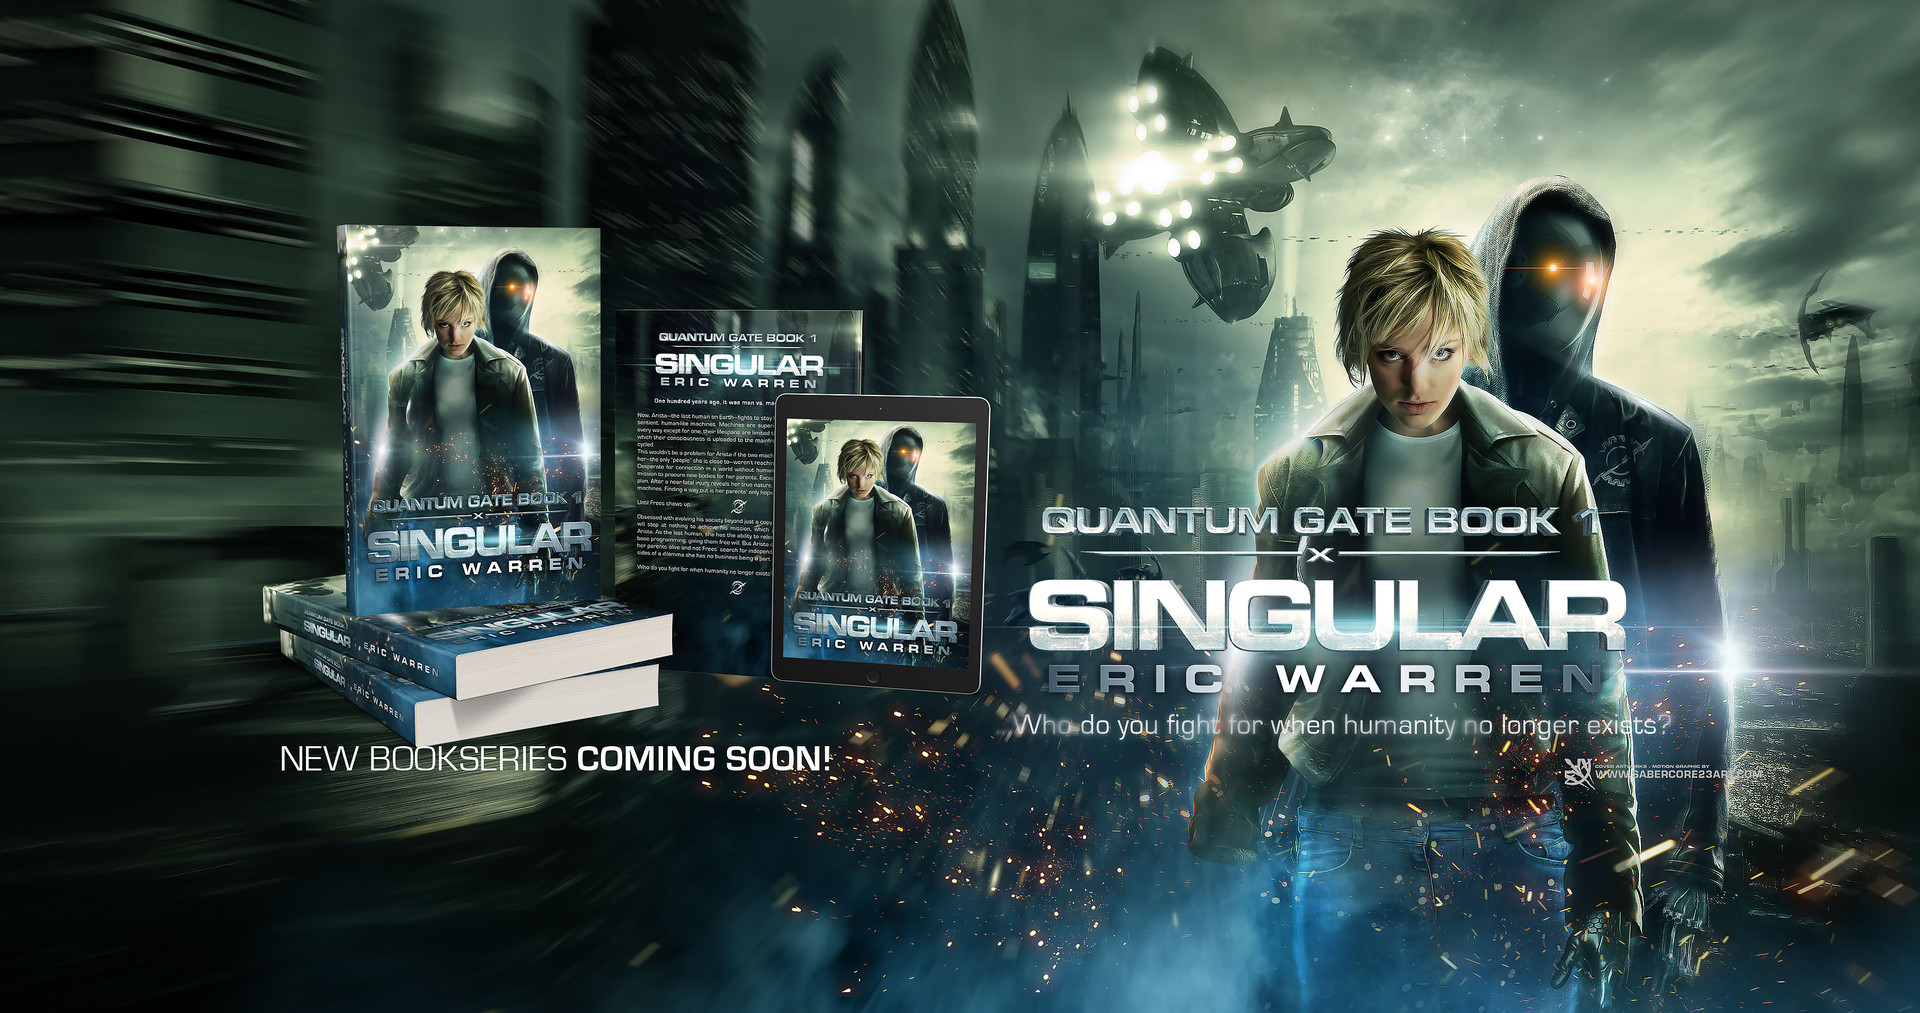 Singual version#1--flayerpromo-sabercore